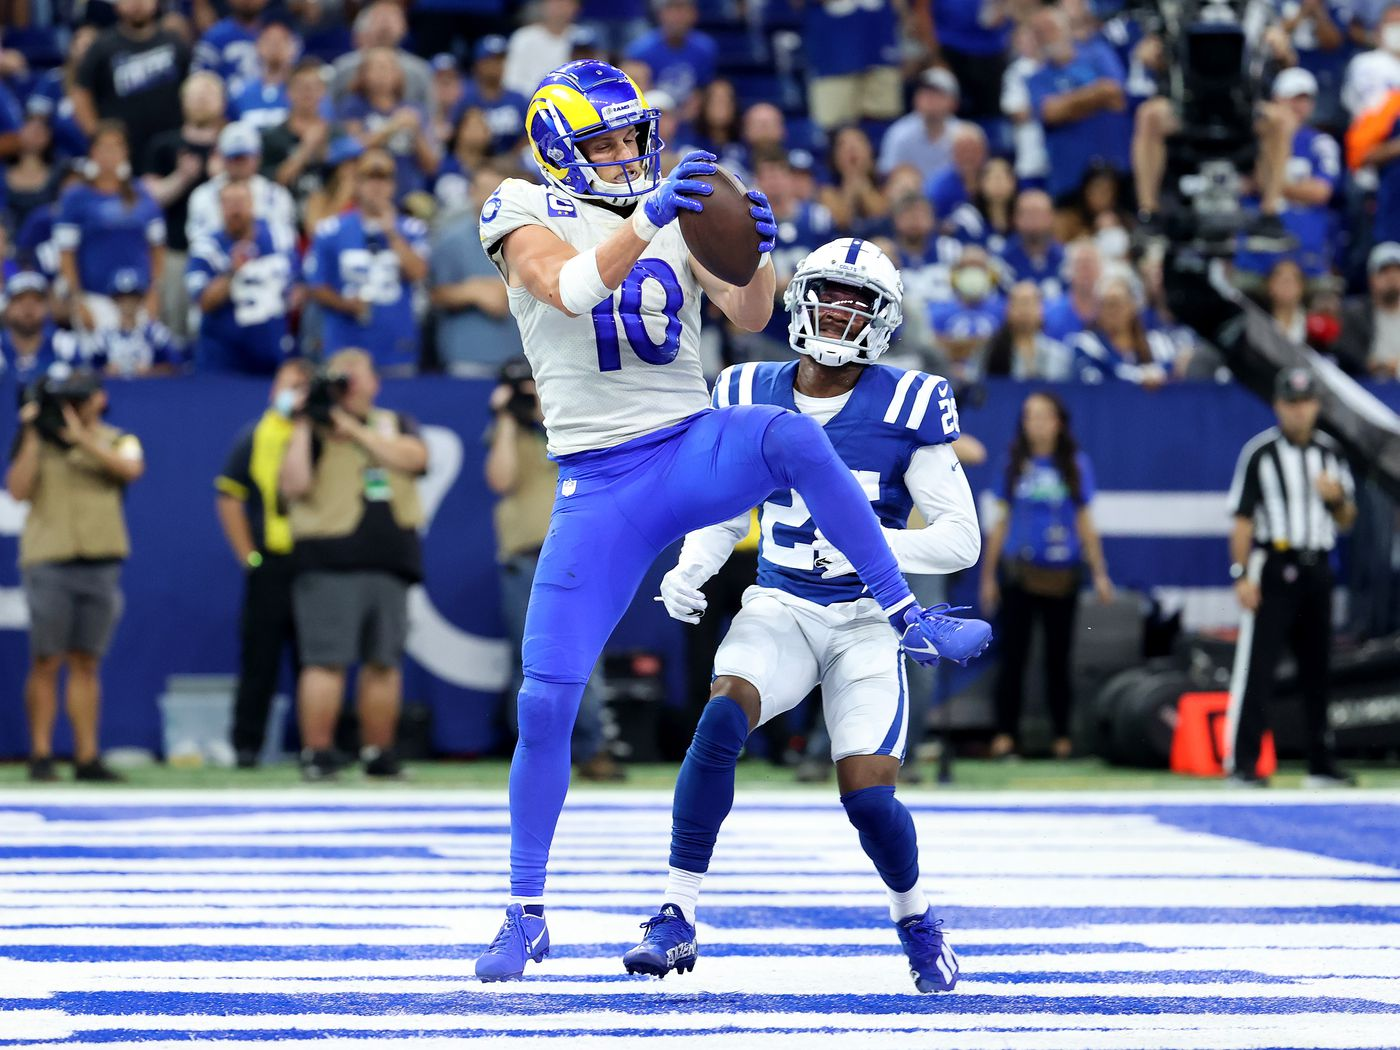 Rams' Matthew Stafford-to-Cooper Kupp connection is off to a HOT START - Turf Show Times